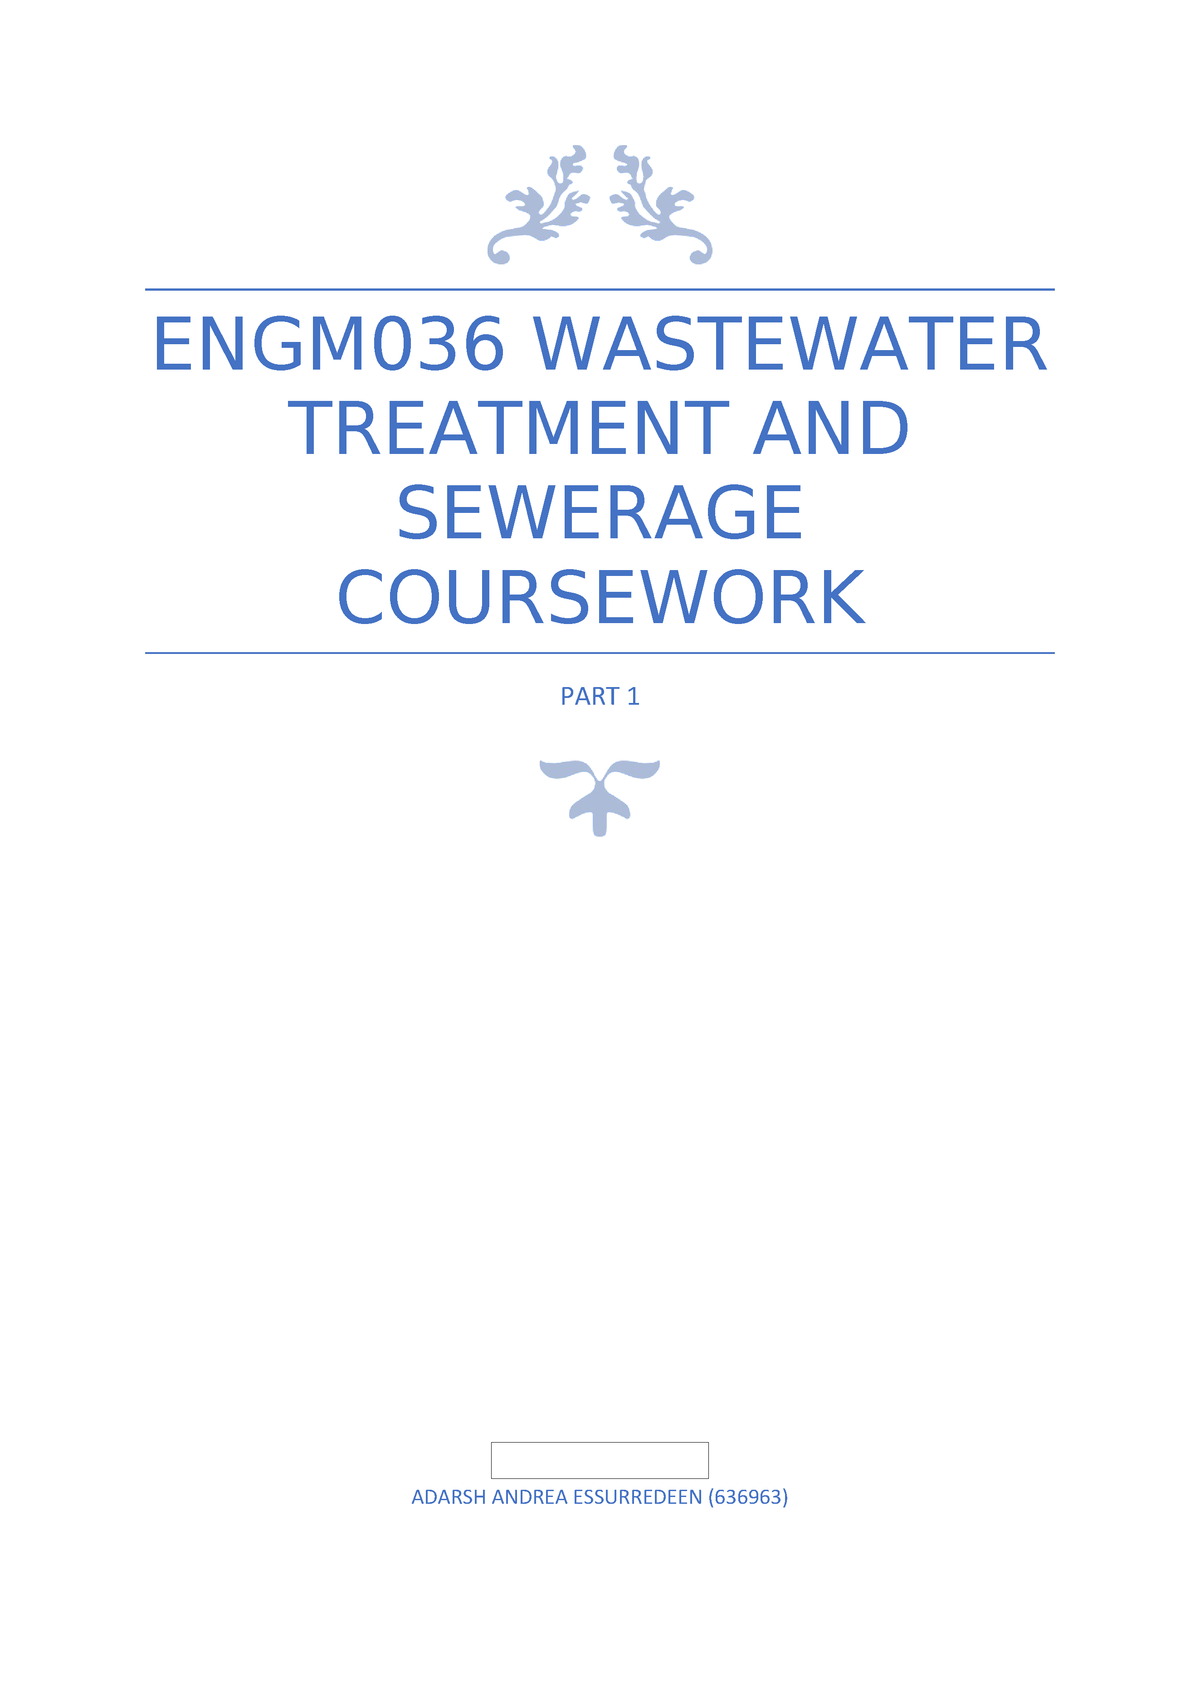 Wastewater Treatment AND Sewerage Coursework - ENGM036: WASTEWATER